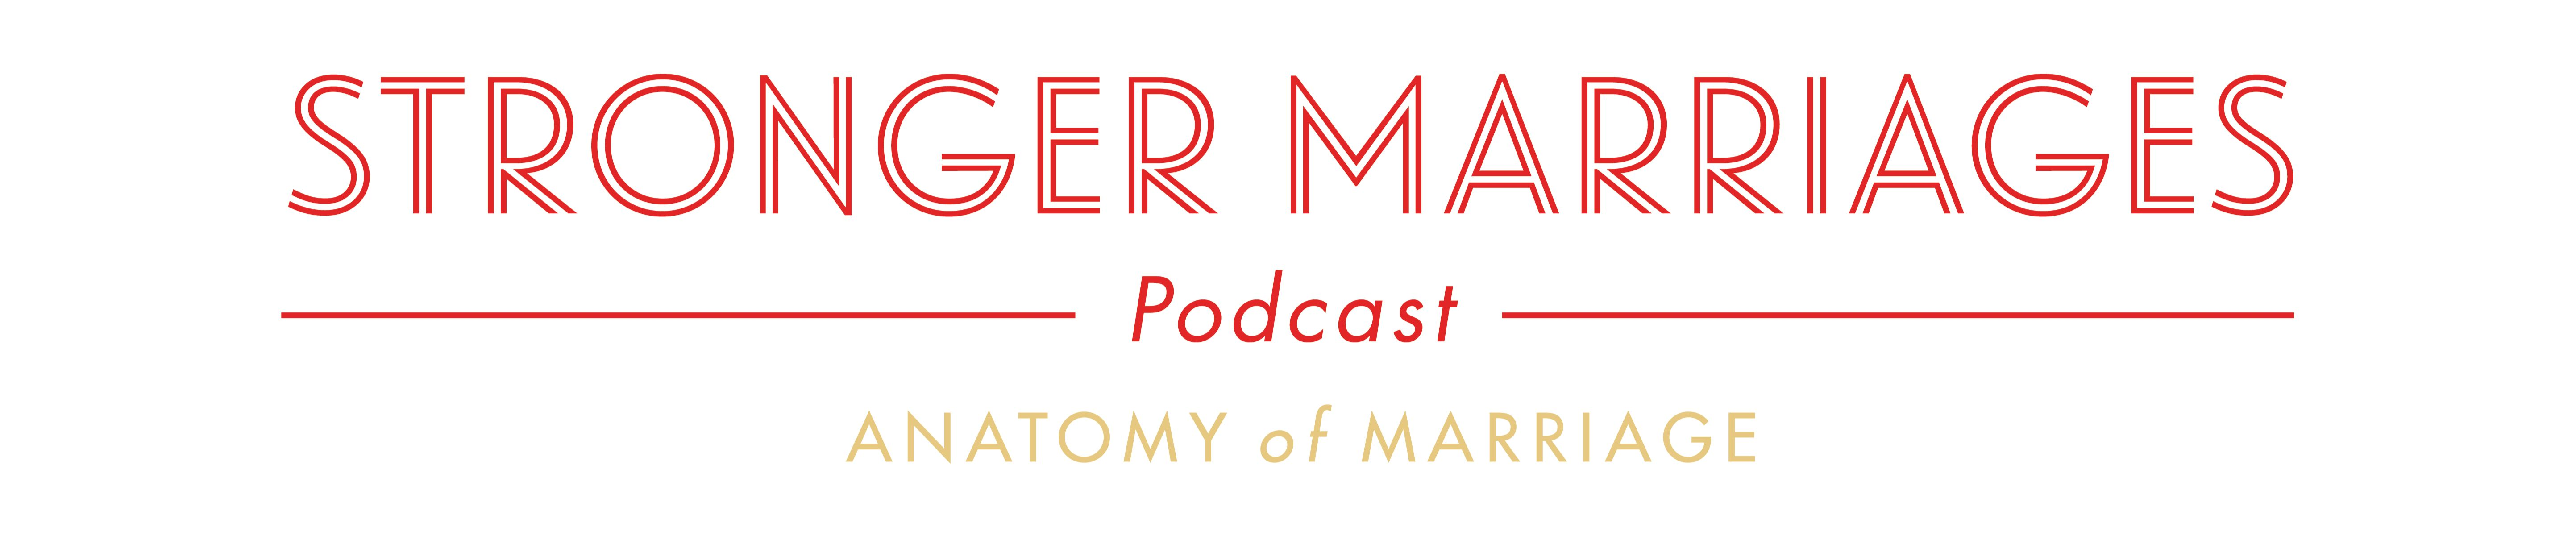 Anatomy Of Marriage Podcast Free Listening On Soundcloud